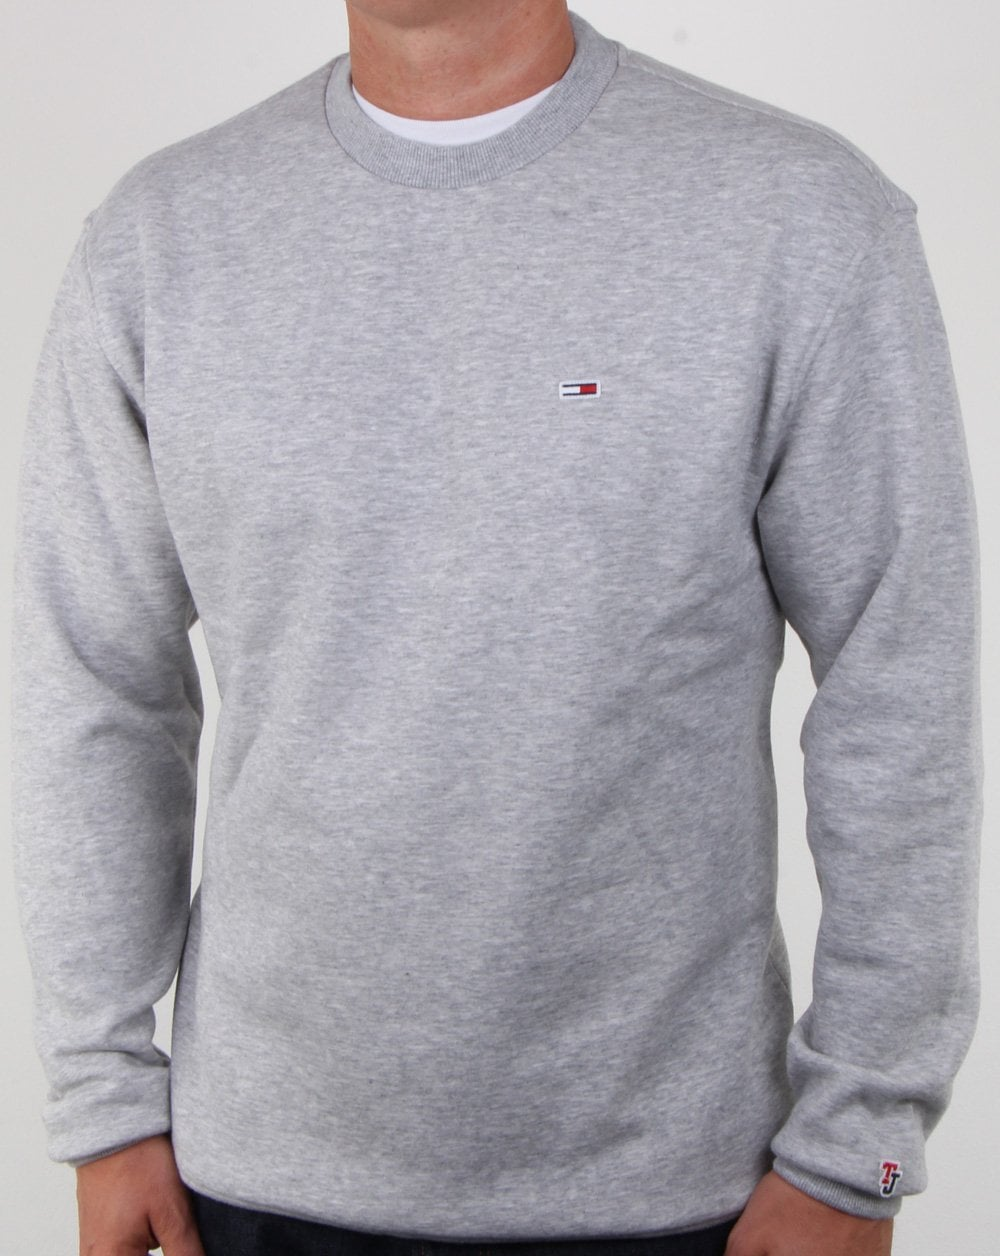 9769d1dc1 Tommy Hilfiger Classic Crew Neck Sweatshirt Grey Heather